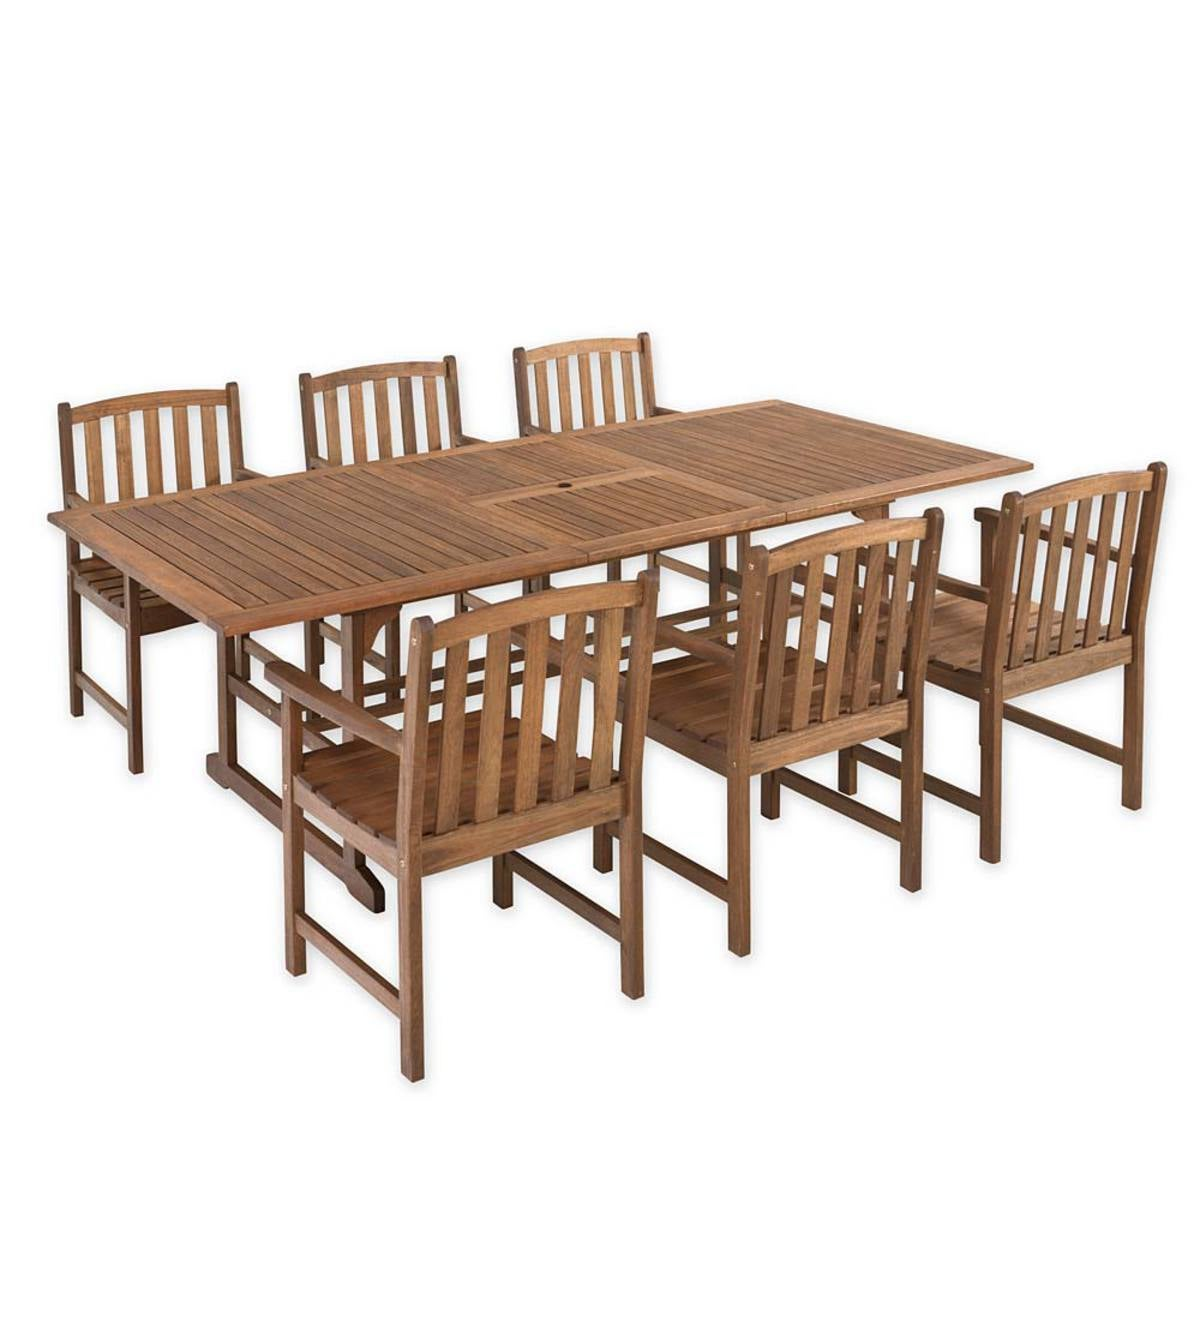 Lancaster Extension Table Set, Extension Table and 6 Chairs - Natural